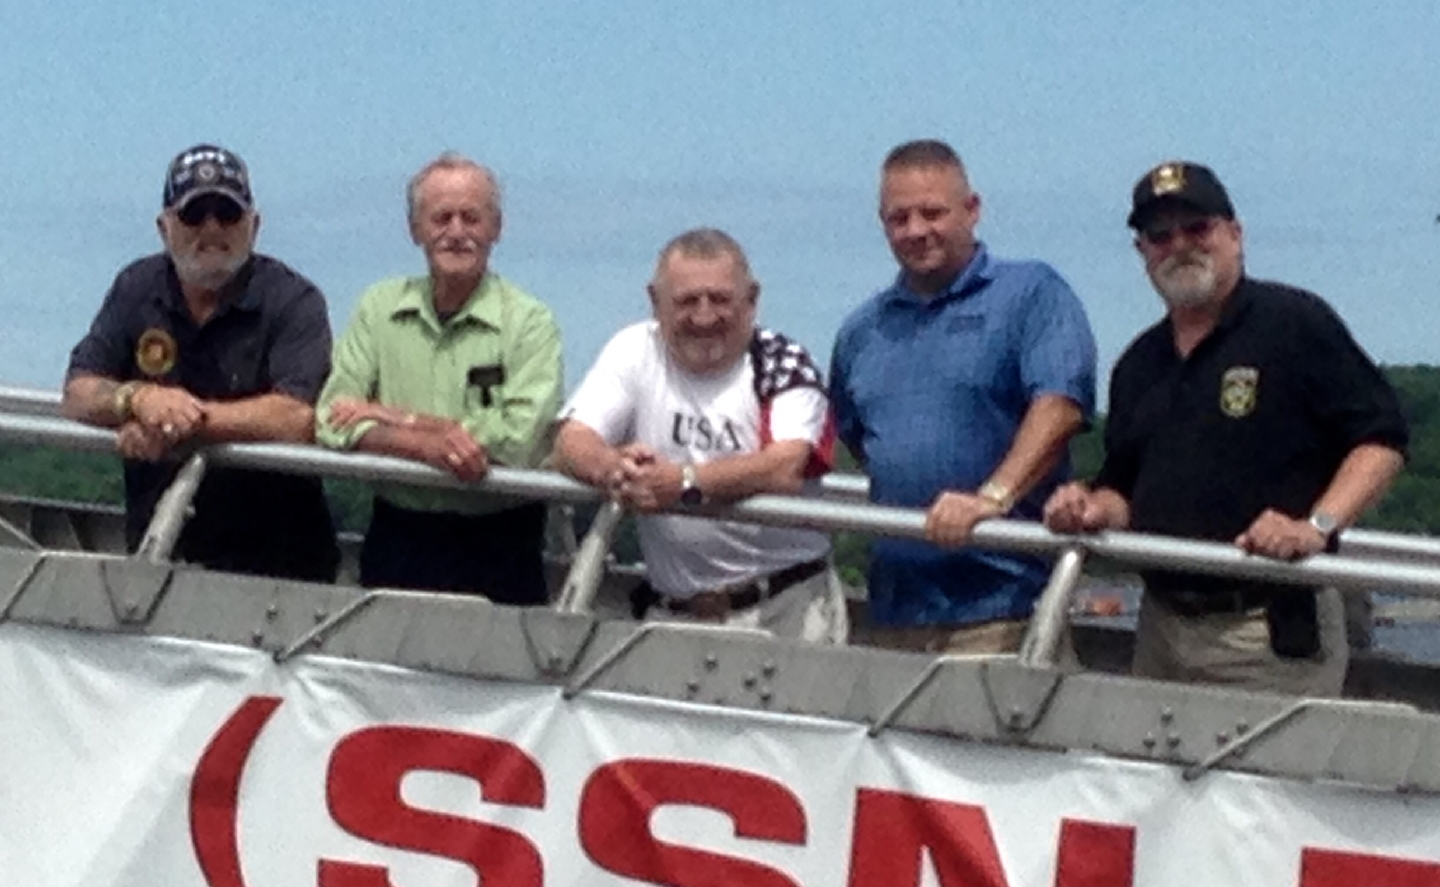 Past State Commander Bob Priest, Rusty Meek, Bob Bailey and State Sr. Vice Commander Dave Greene aboard the Nautilus Submarine in Groton, with National VFW Programs Director Lynn Rolf